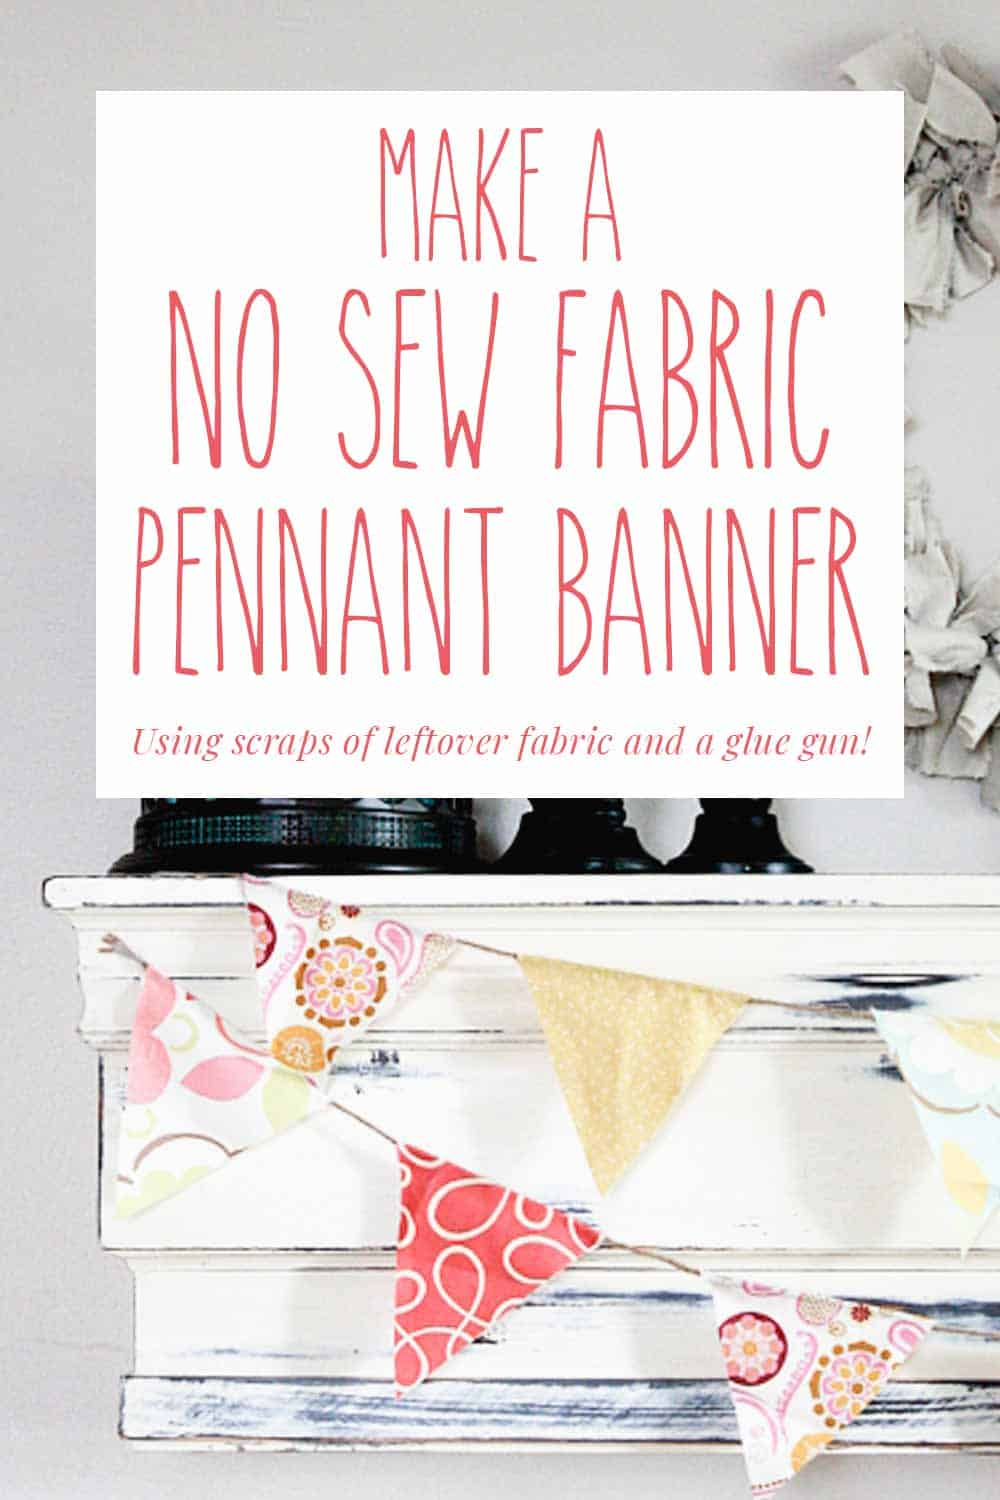 fabric banners on shelf, no sew fabric pennant banner